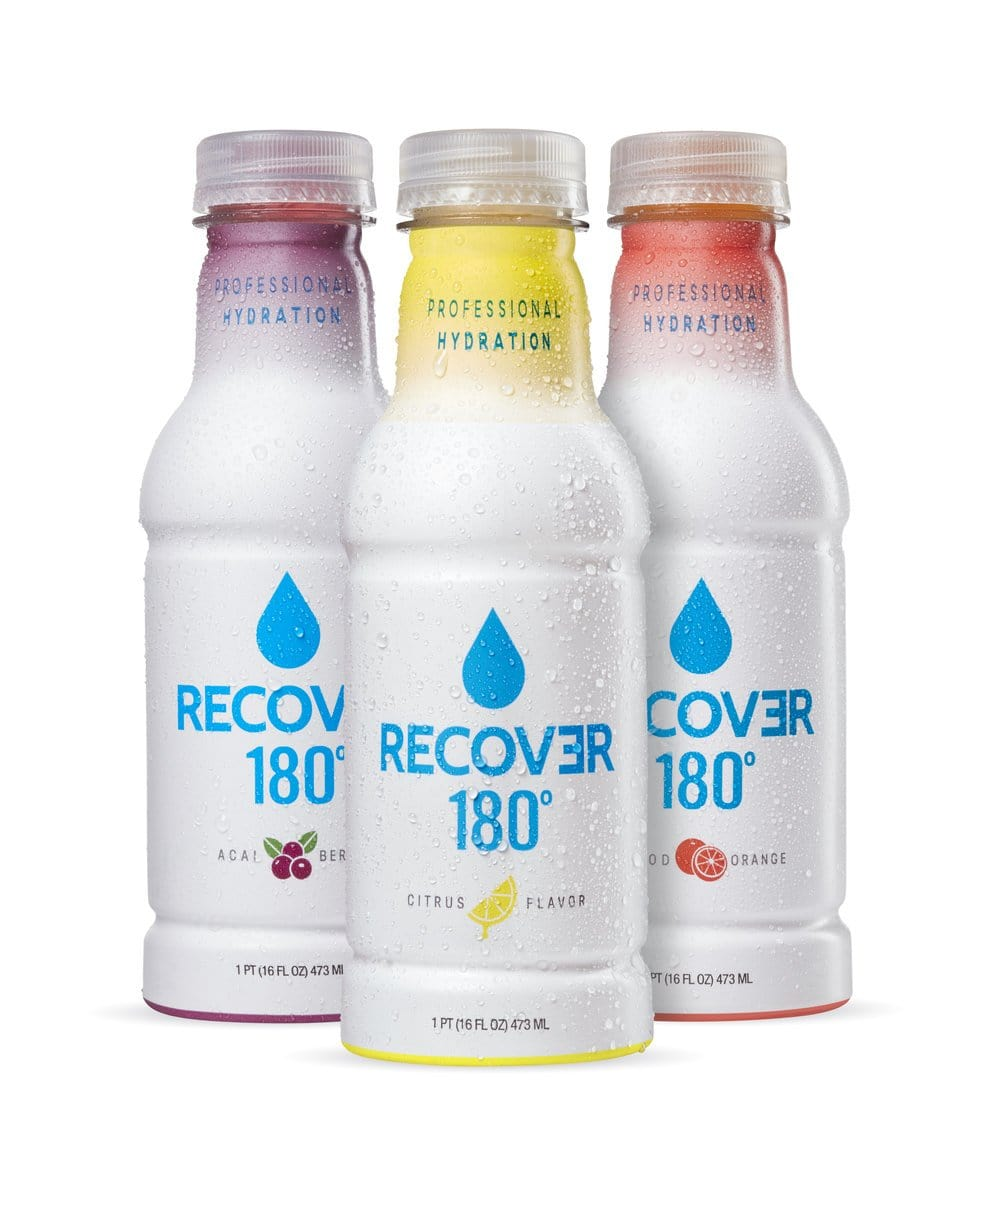 Recover 180